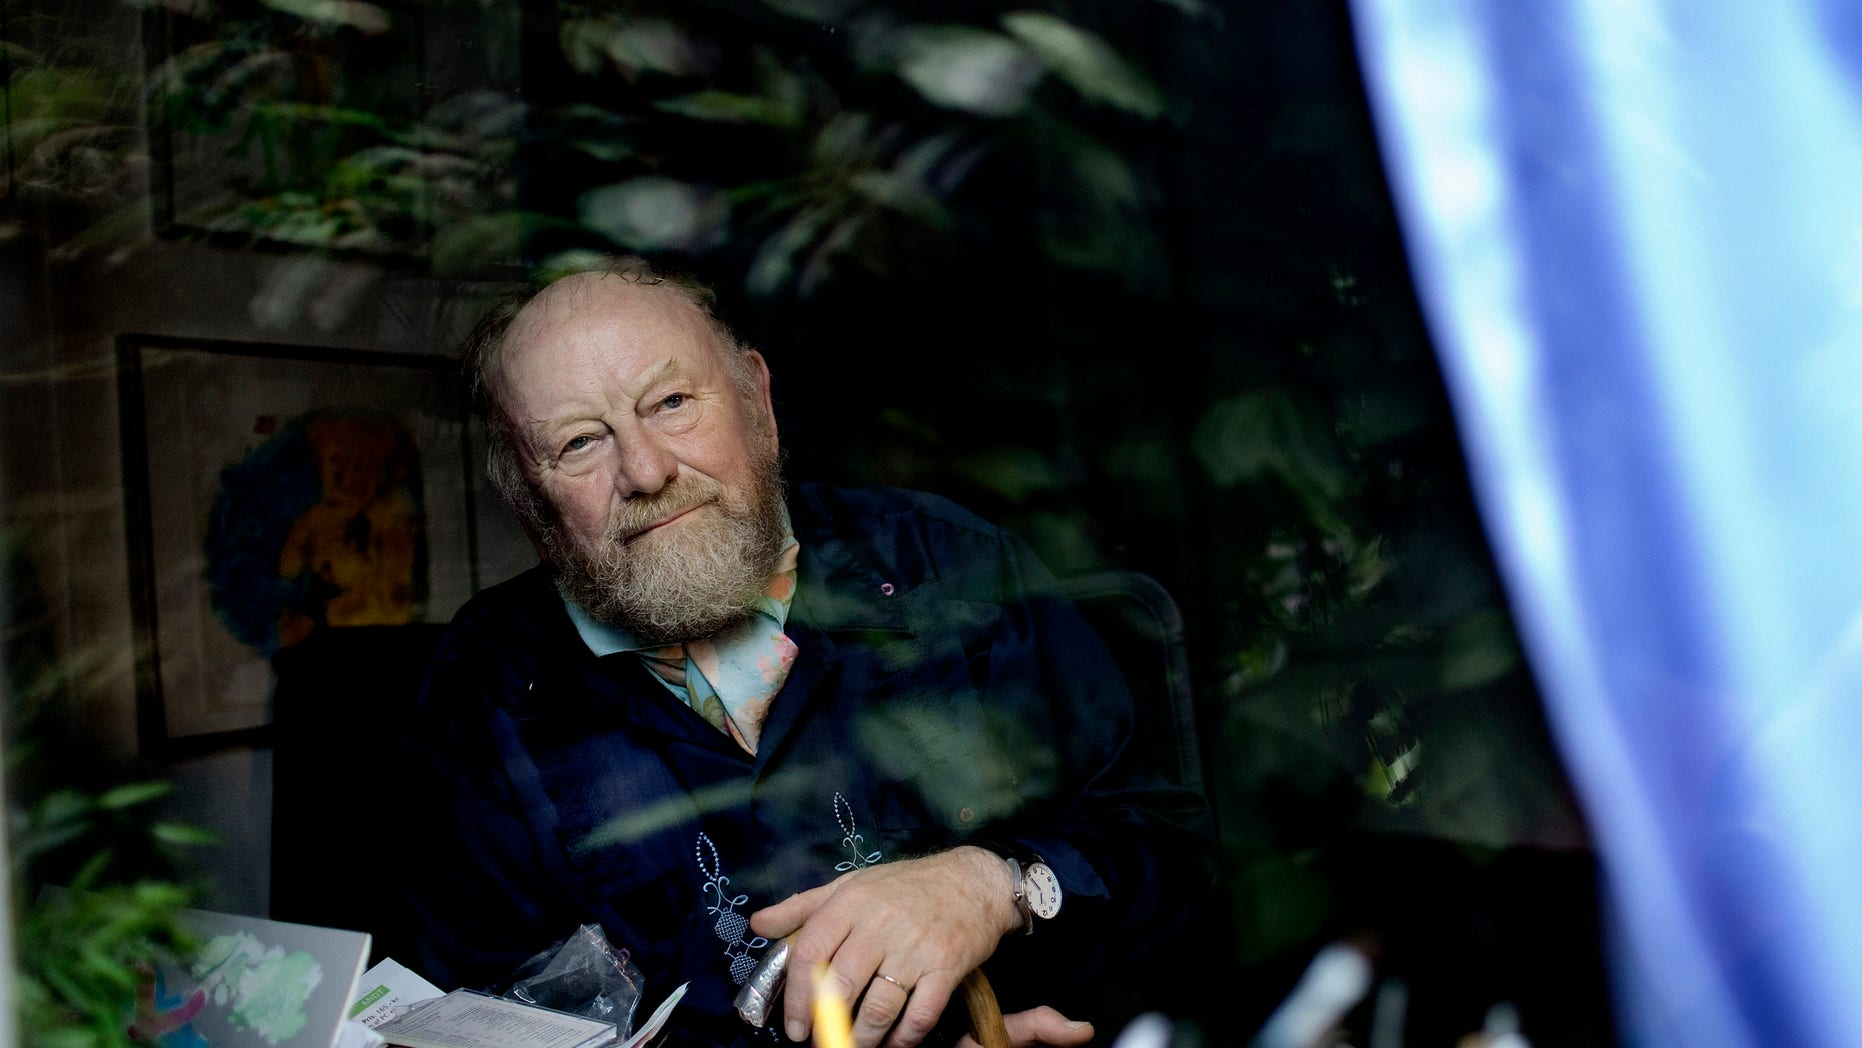 June 6, 2010: Danish cartoonist Kurt Westergaard is seen at his home near Aarhus, Denmark. A Danish court on Feb. 3, 2011, declared a Somali man guilty of terrorism for using an ax to break into the home of a Danish cartoonist who had caricatured the Prophet Muhammad.